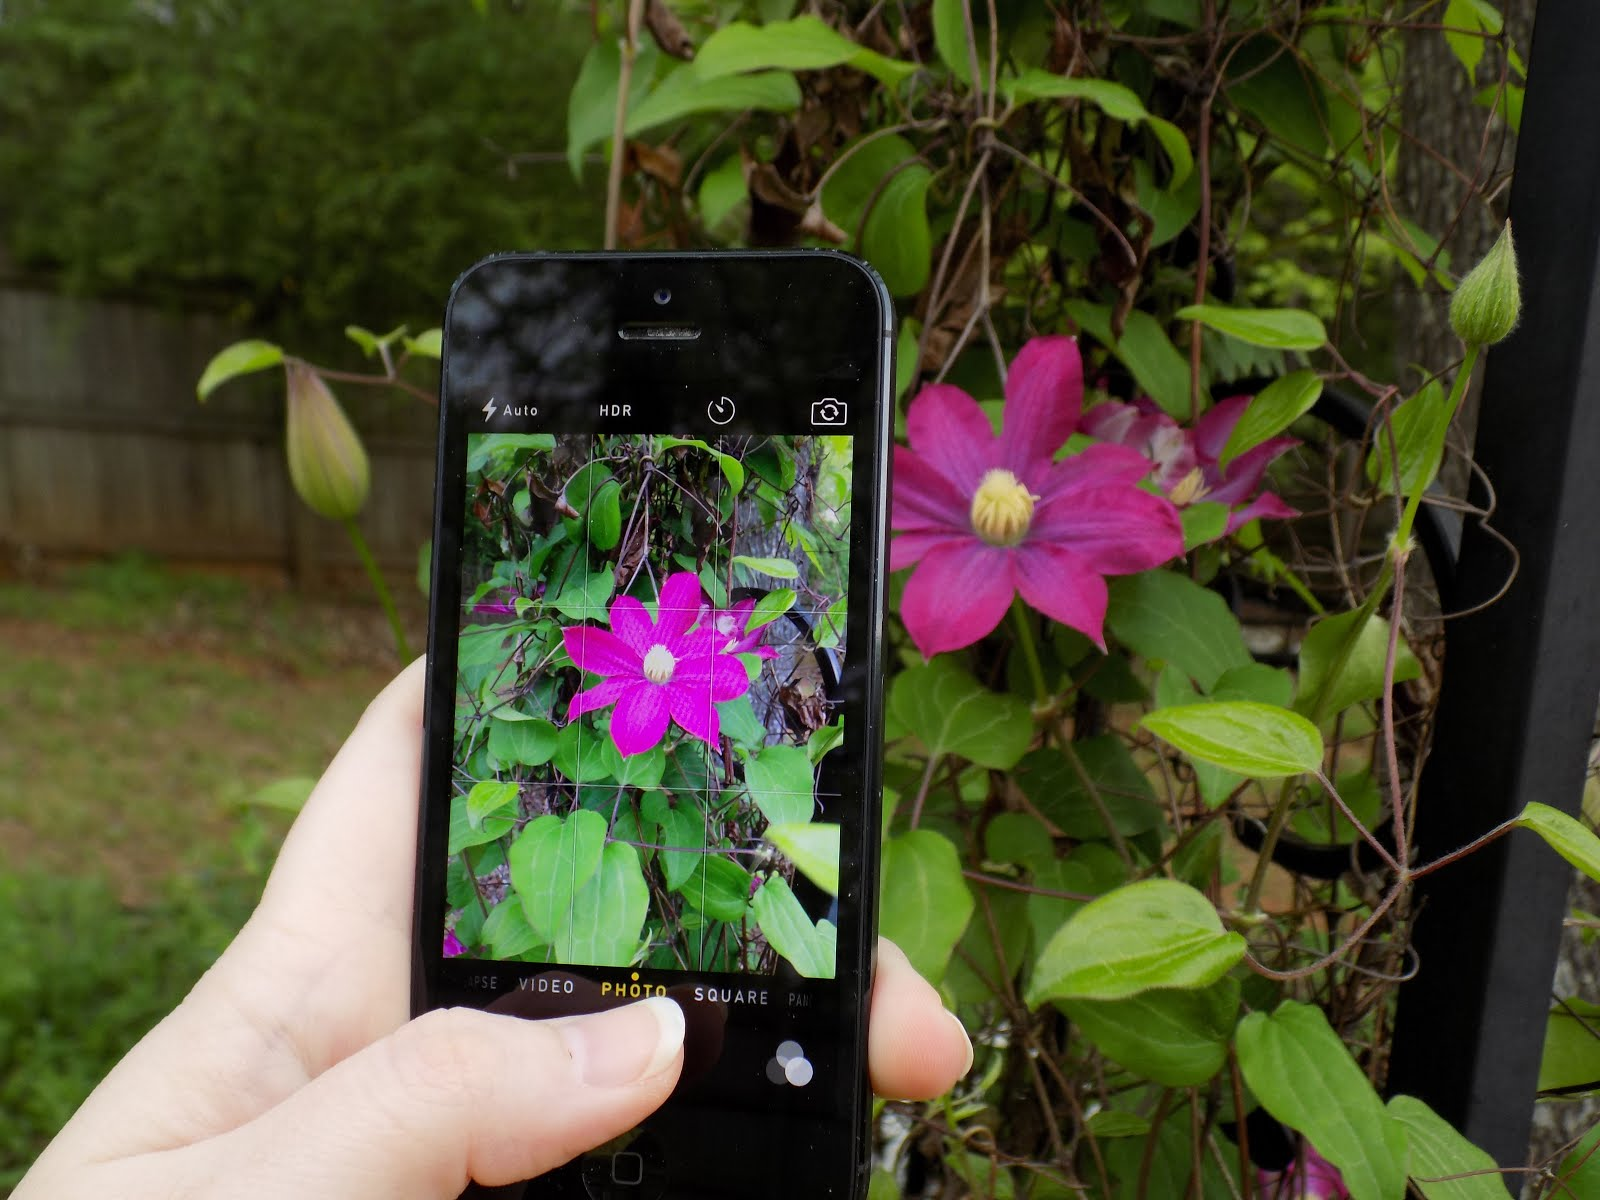 take smartphone photos of your landscape projects